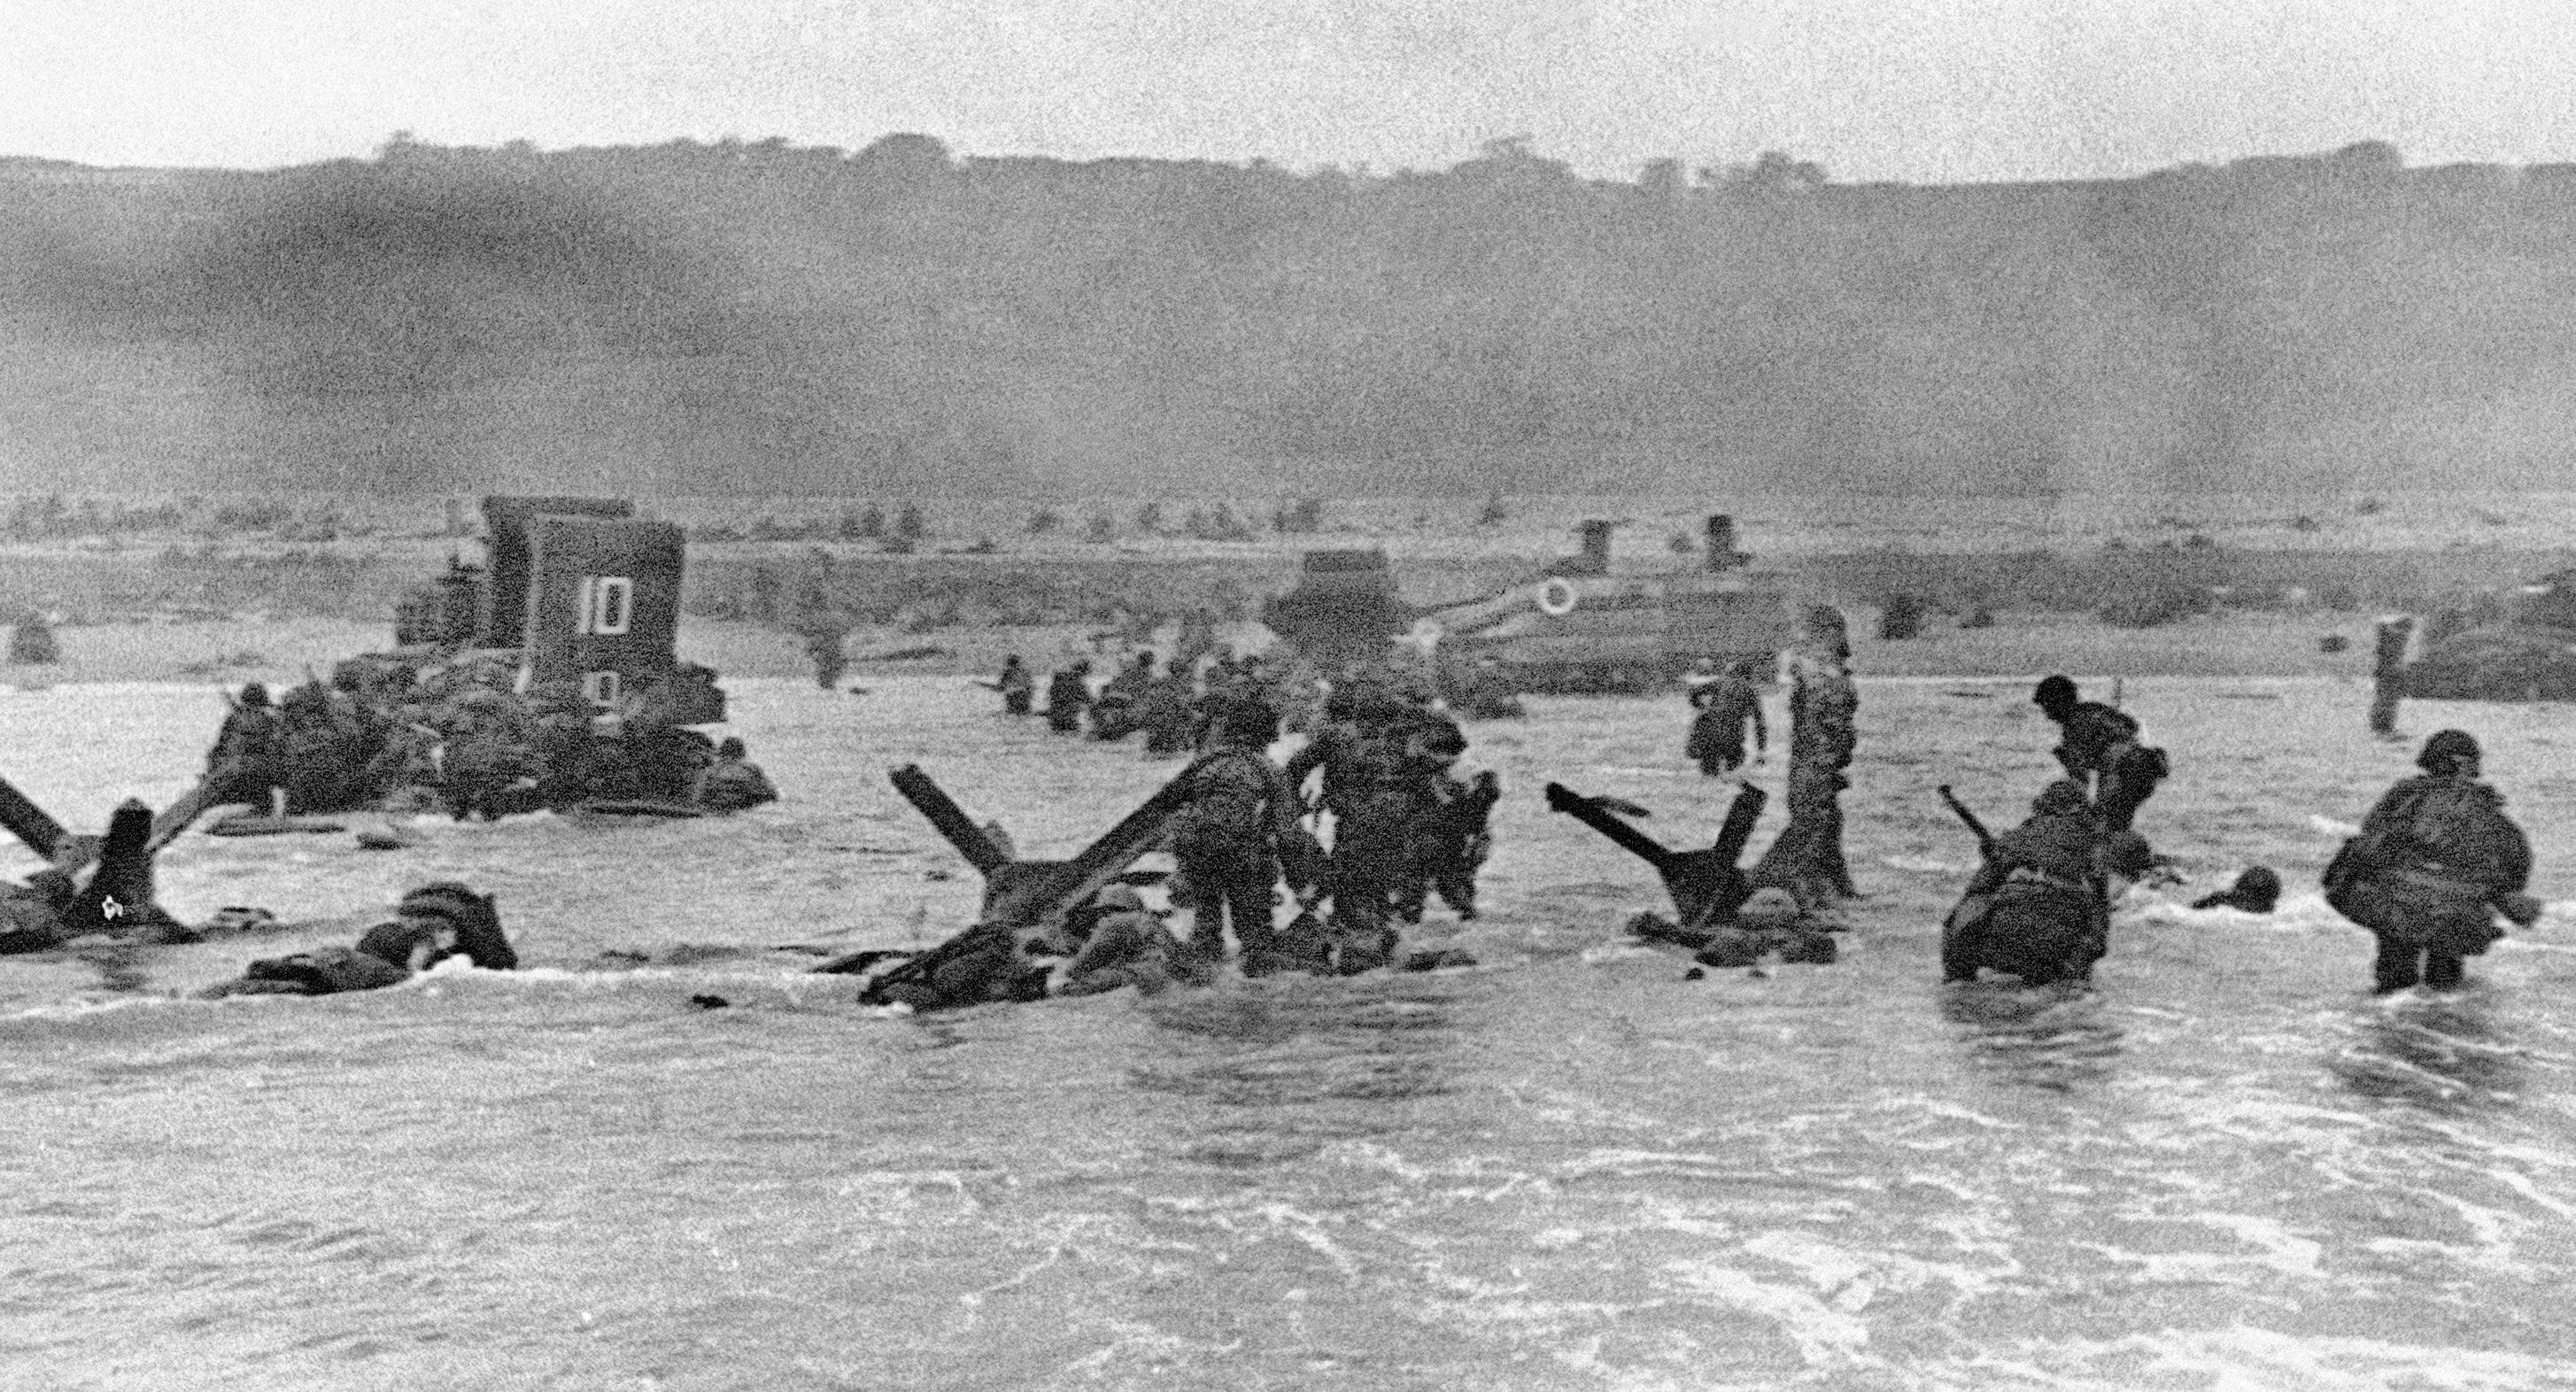 In this June 6, 1944, photo, some of the first troops to hit the Normandy, France, beachhead take cover behind enemy obstacles to fire on German forces as others follow the first tanks plunging through the water.